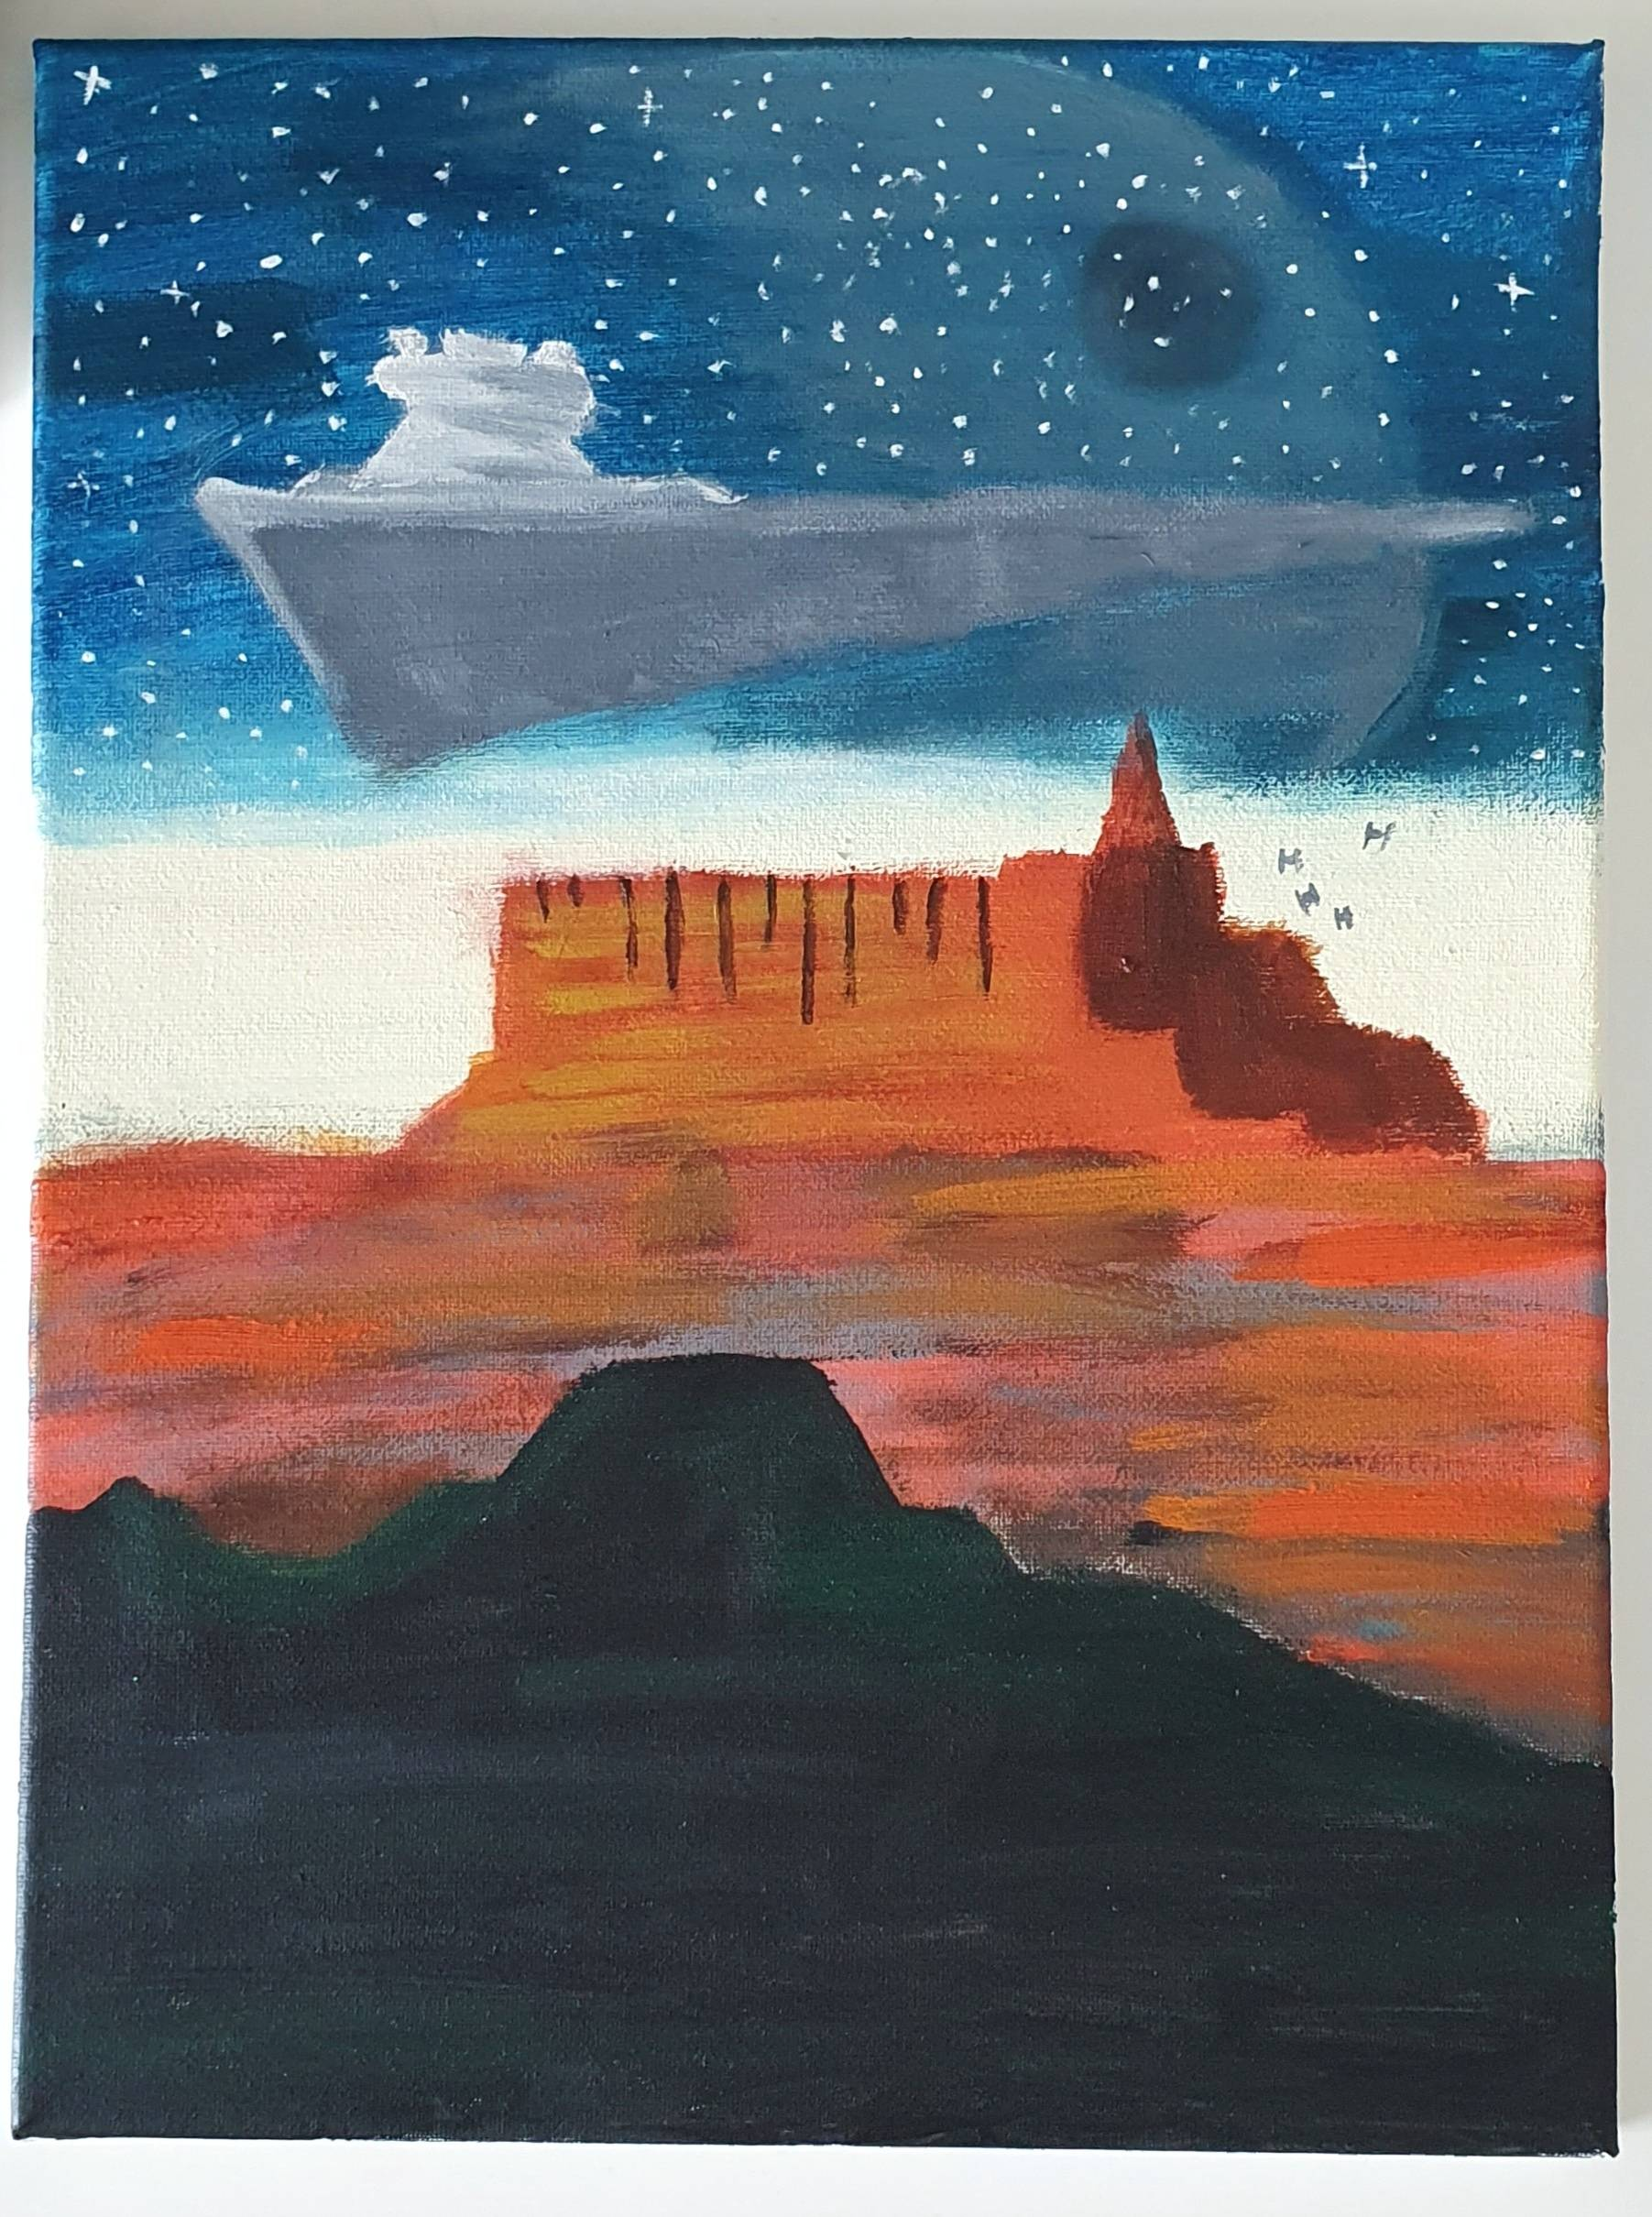 Jedha - painted by my 12 year old daughter